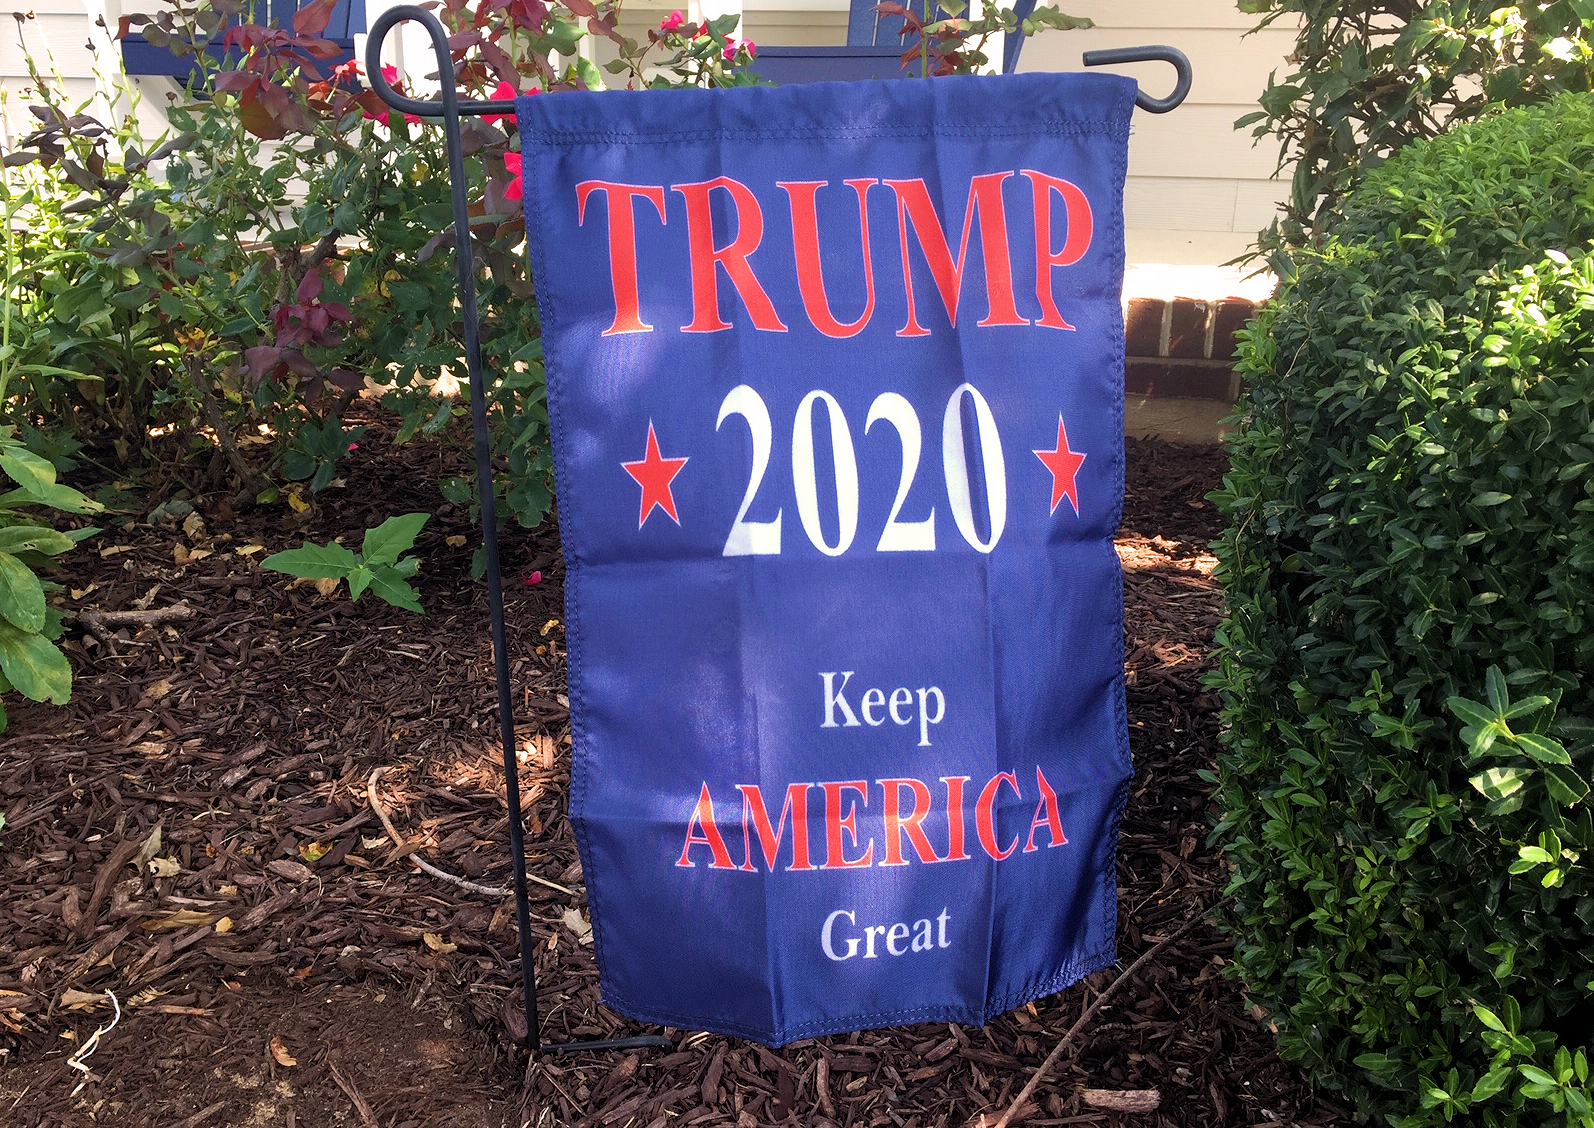 Trump 2020 Keep America Great garden banner flag